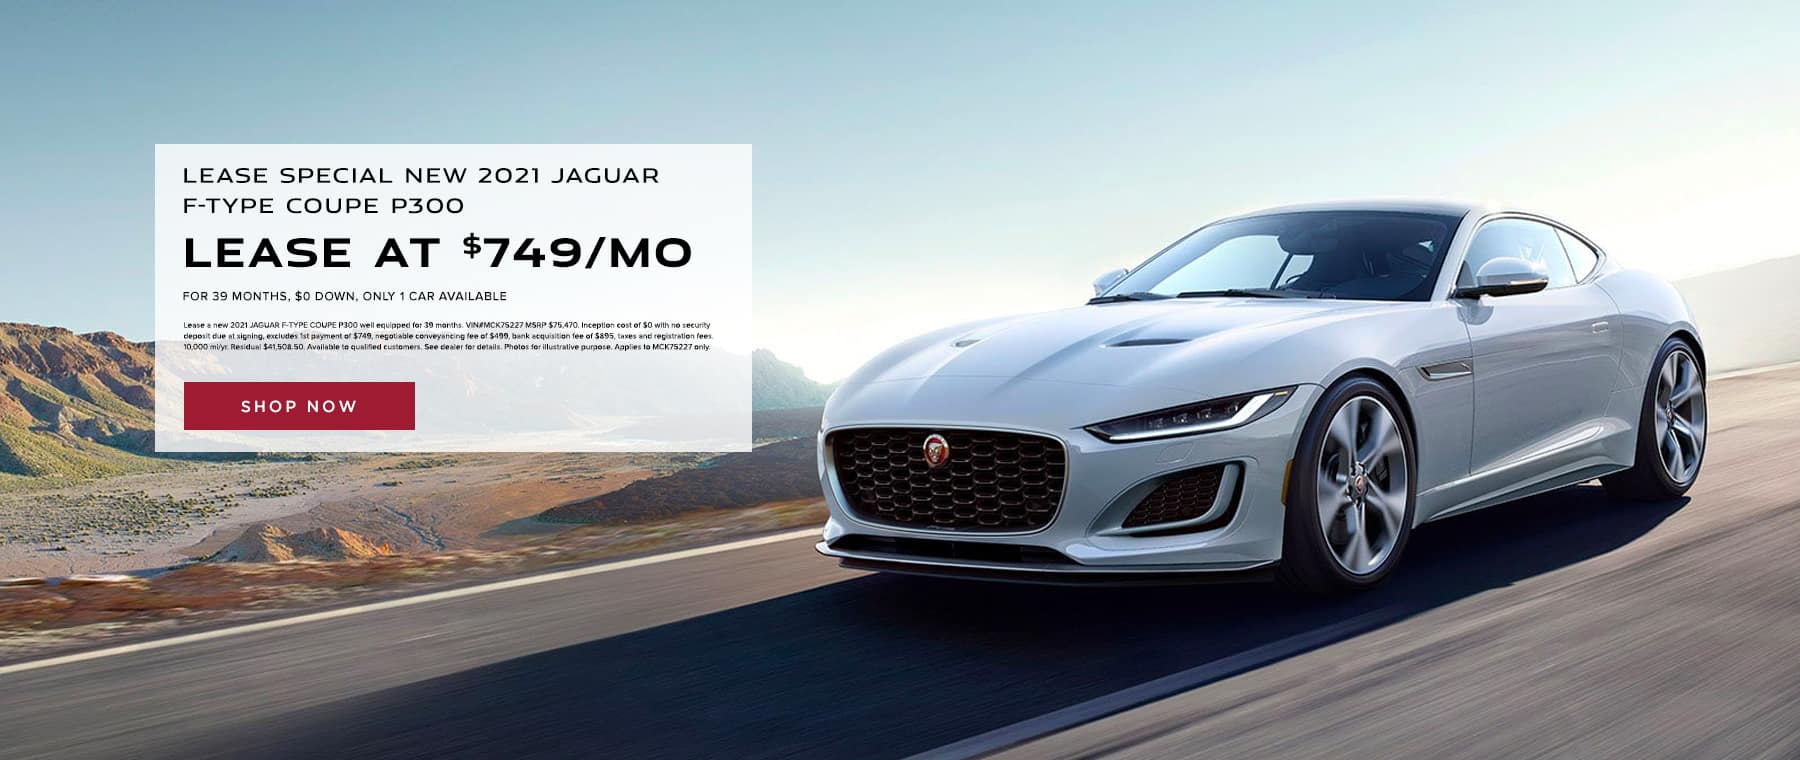 LEASE SPECIAL NEW 2021 JAGUAR F-TYPE COUPE P300 – only 1 car available LEASE AT $749 PER MONTH FOR 39 MONTHS $0 DOWN